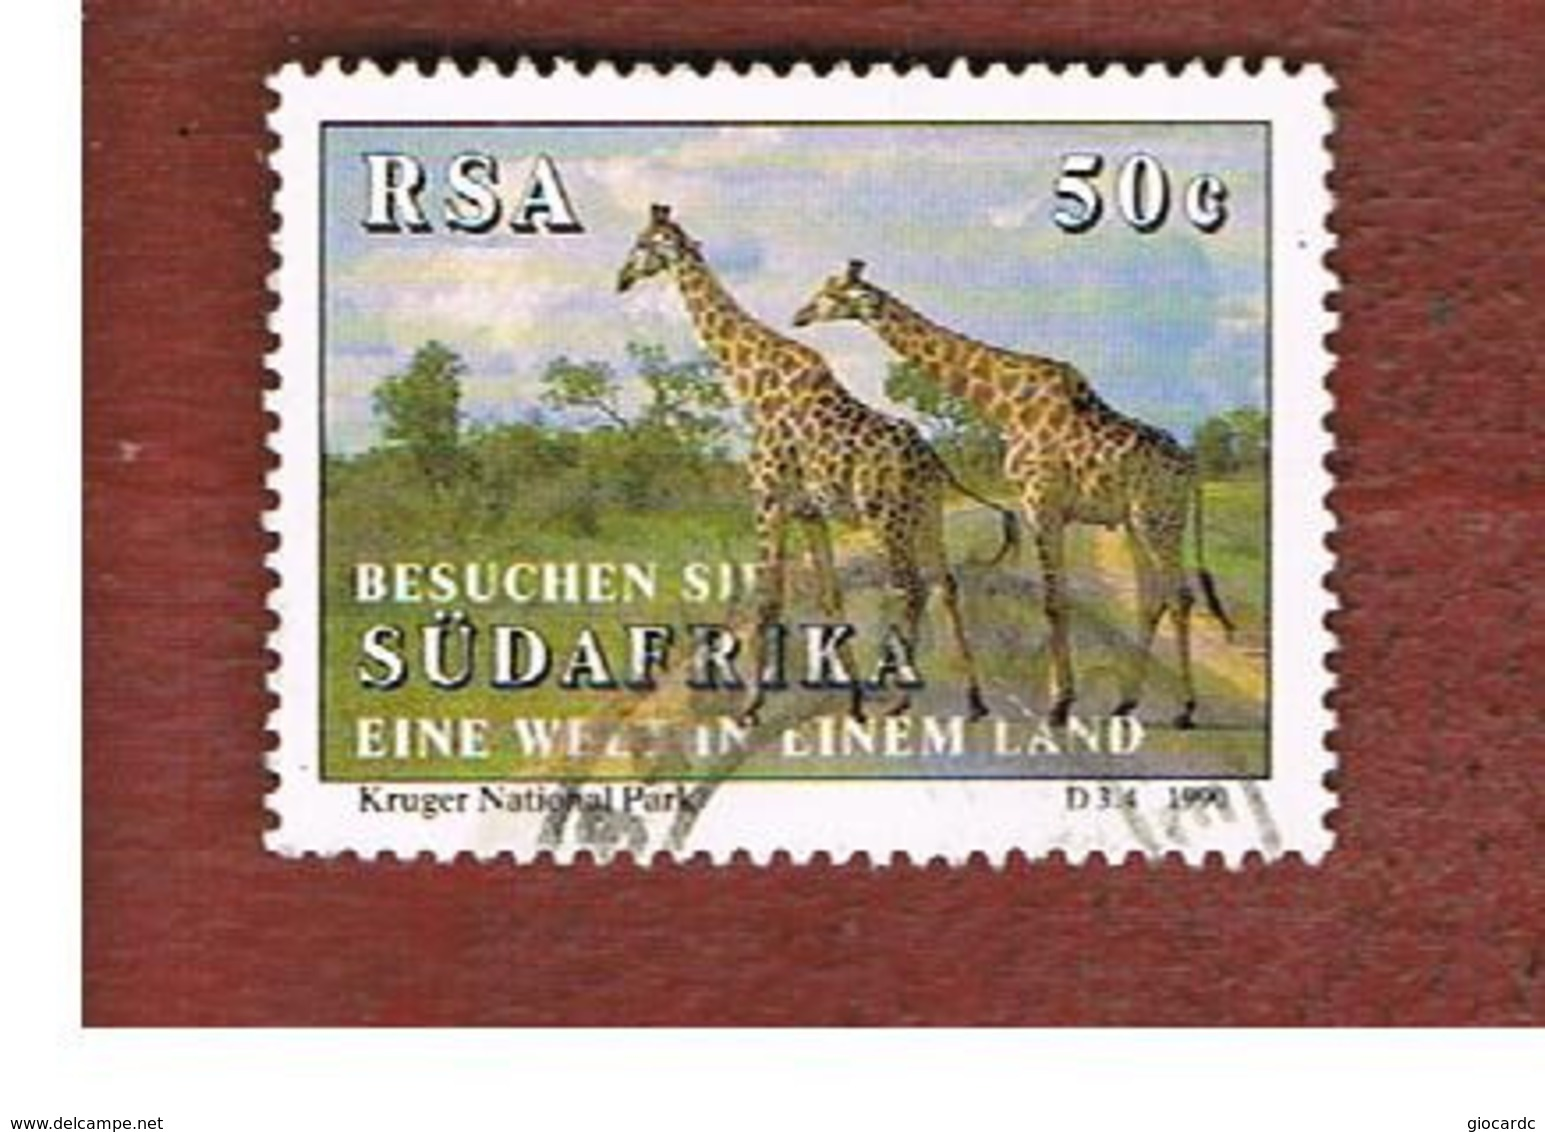 SUD AFRICA (SOUTH AFRICA) - SG 716     - 1990   ANIMALS: GIRAFFES IN NATIONAL PARK   - USED ° - Usati